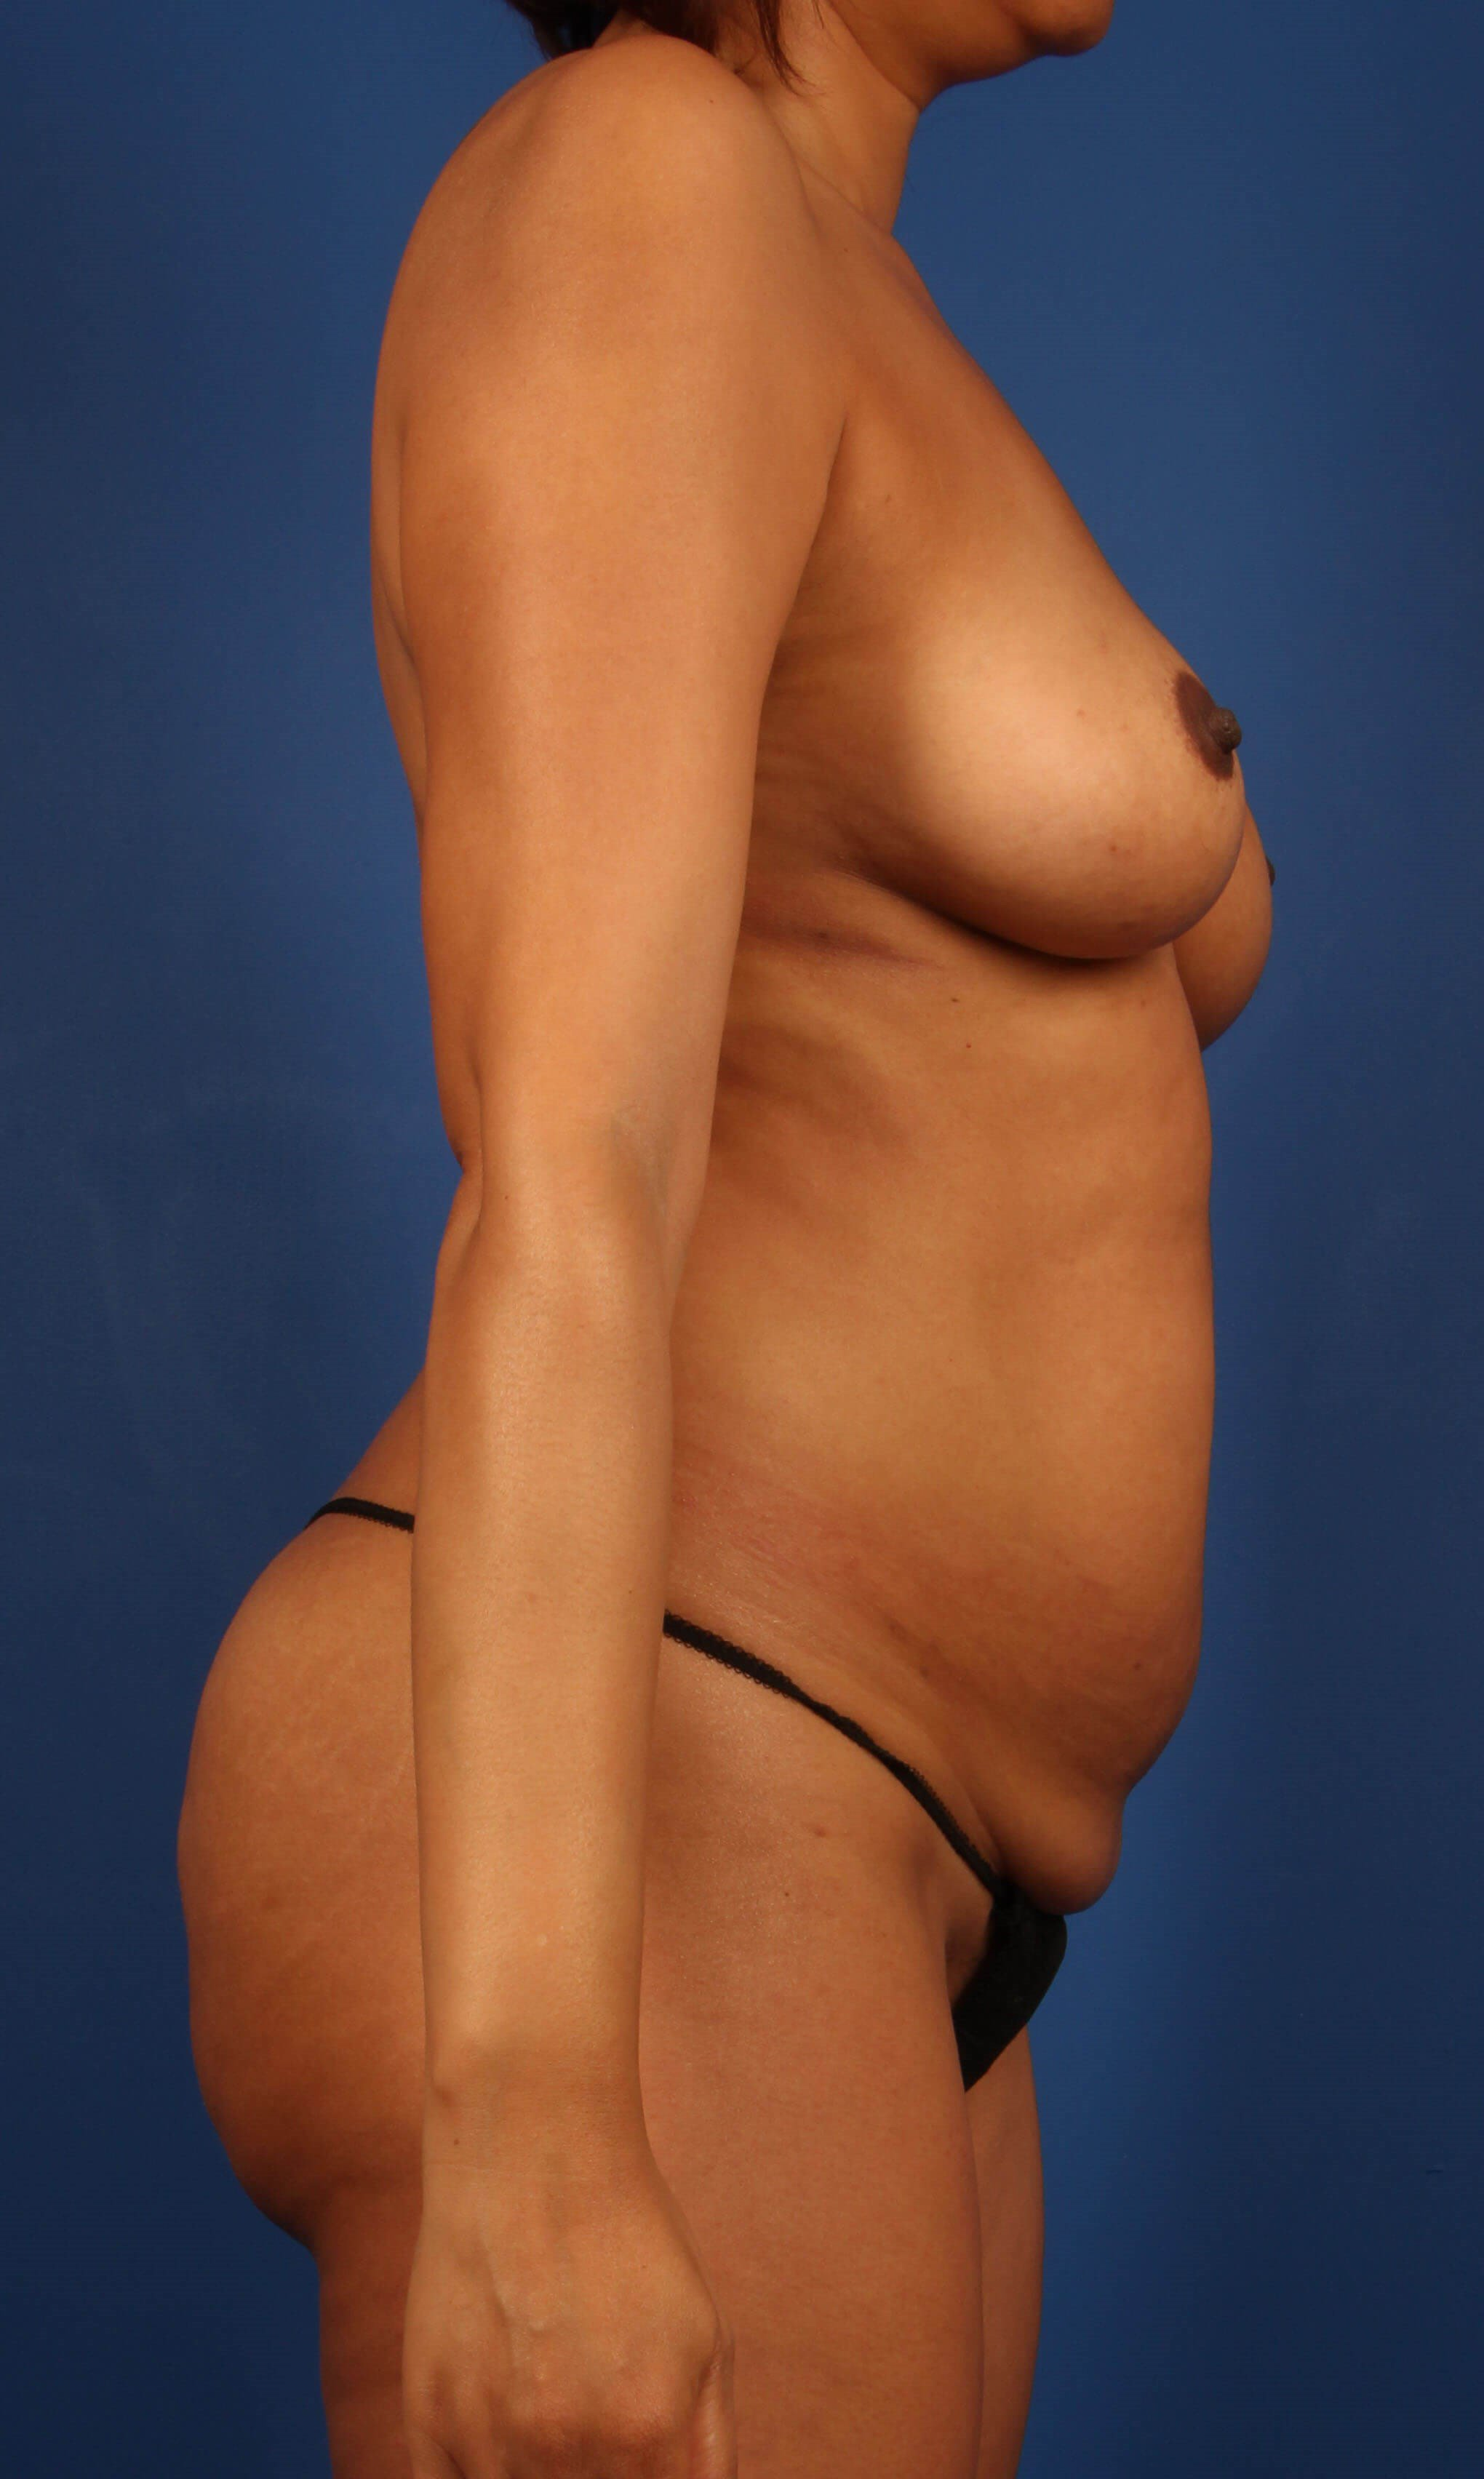 fat transfer to the breast and butt before - Scottsdale AZ mommy makeover